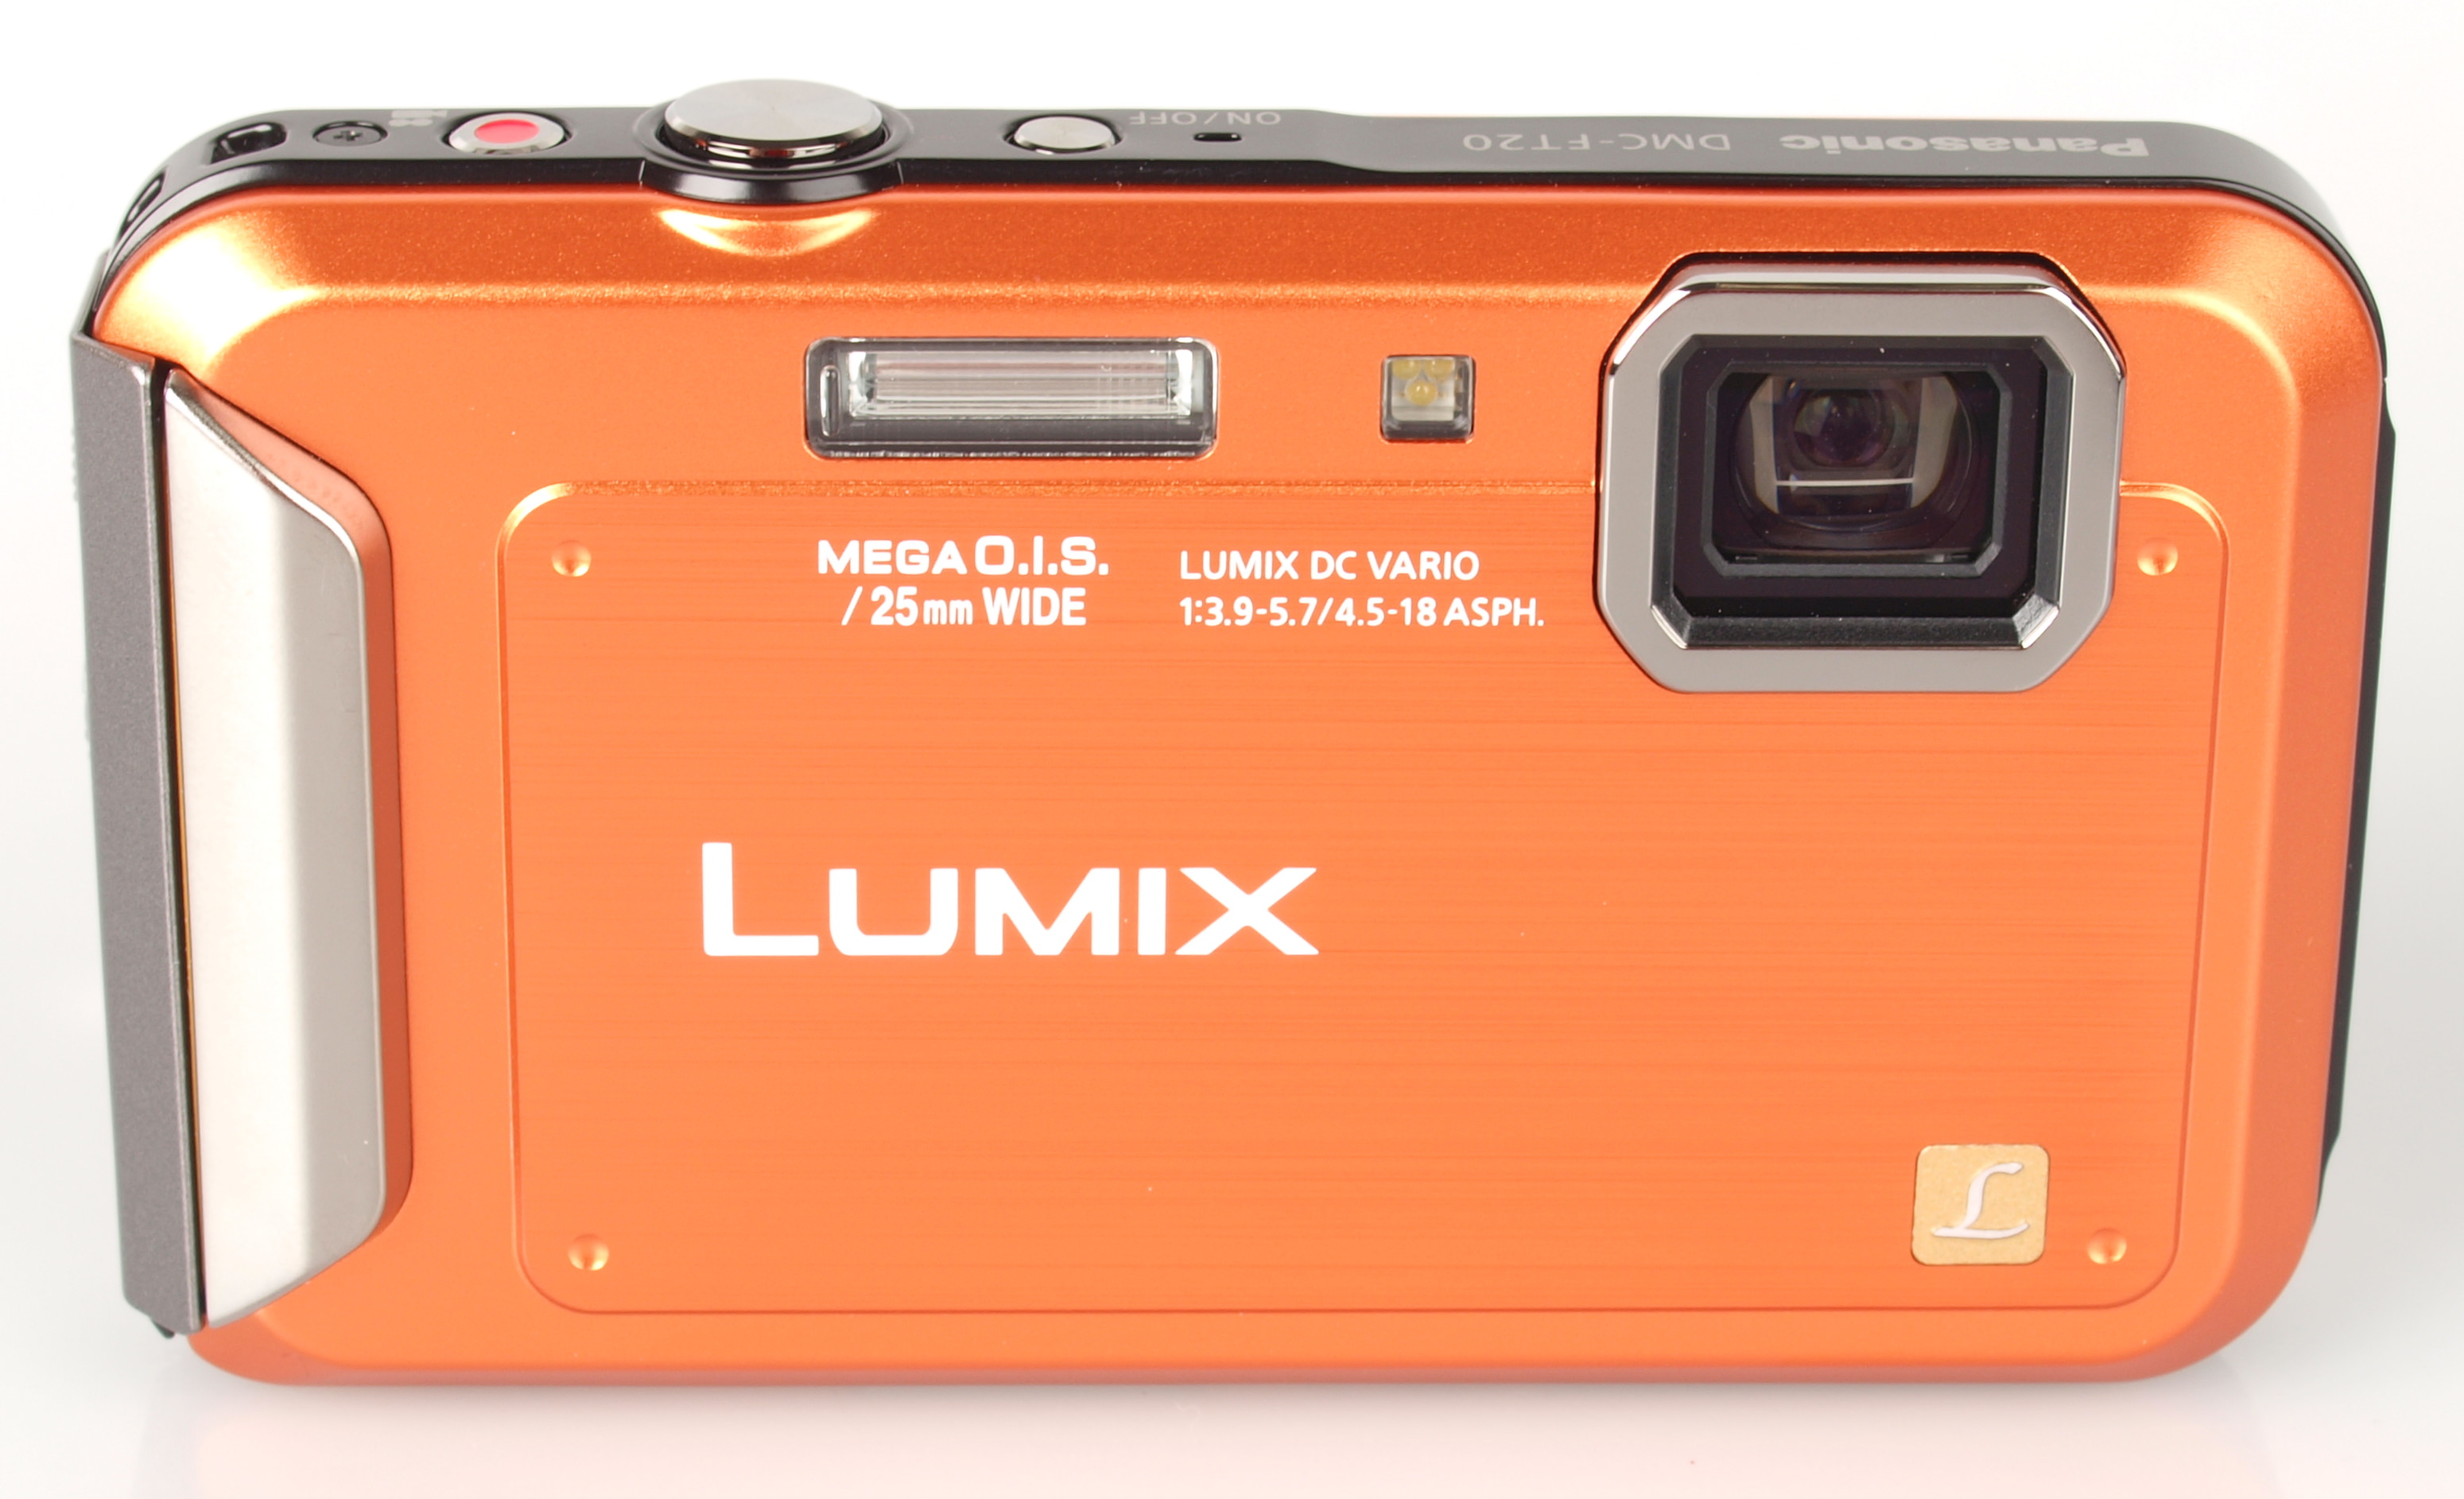 Panasonic Lumix DMC-FT20 Waterproof Camera Review | ePHOTOzine